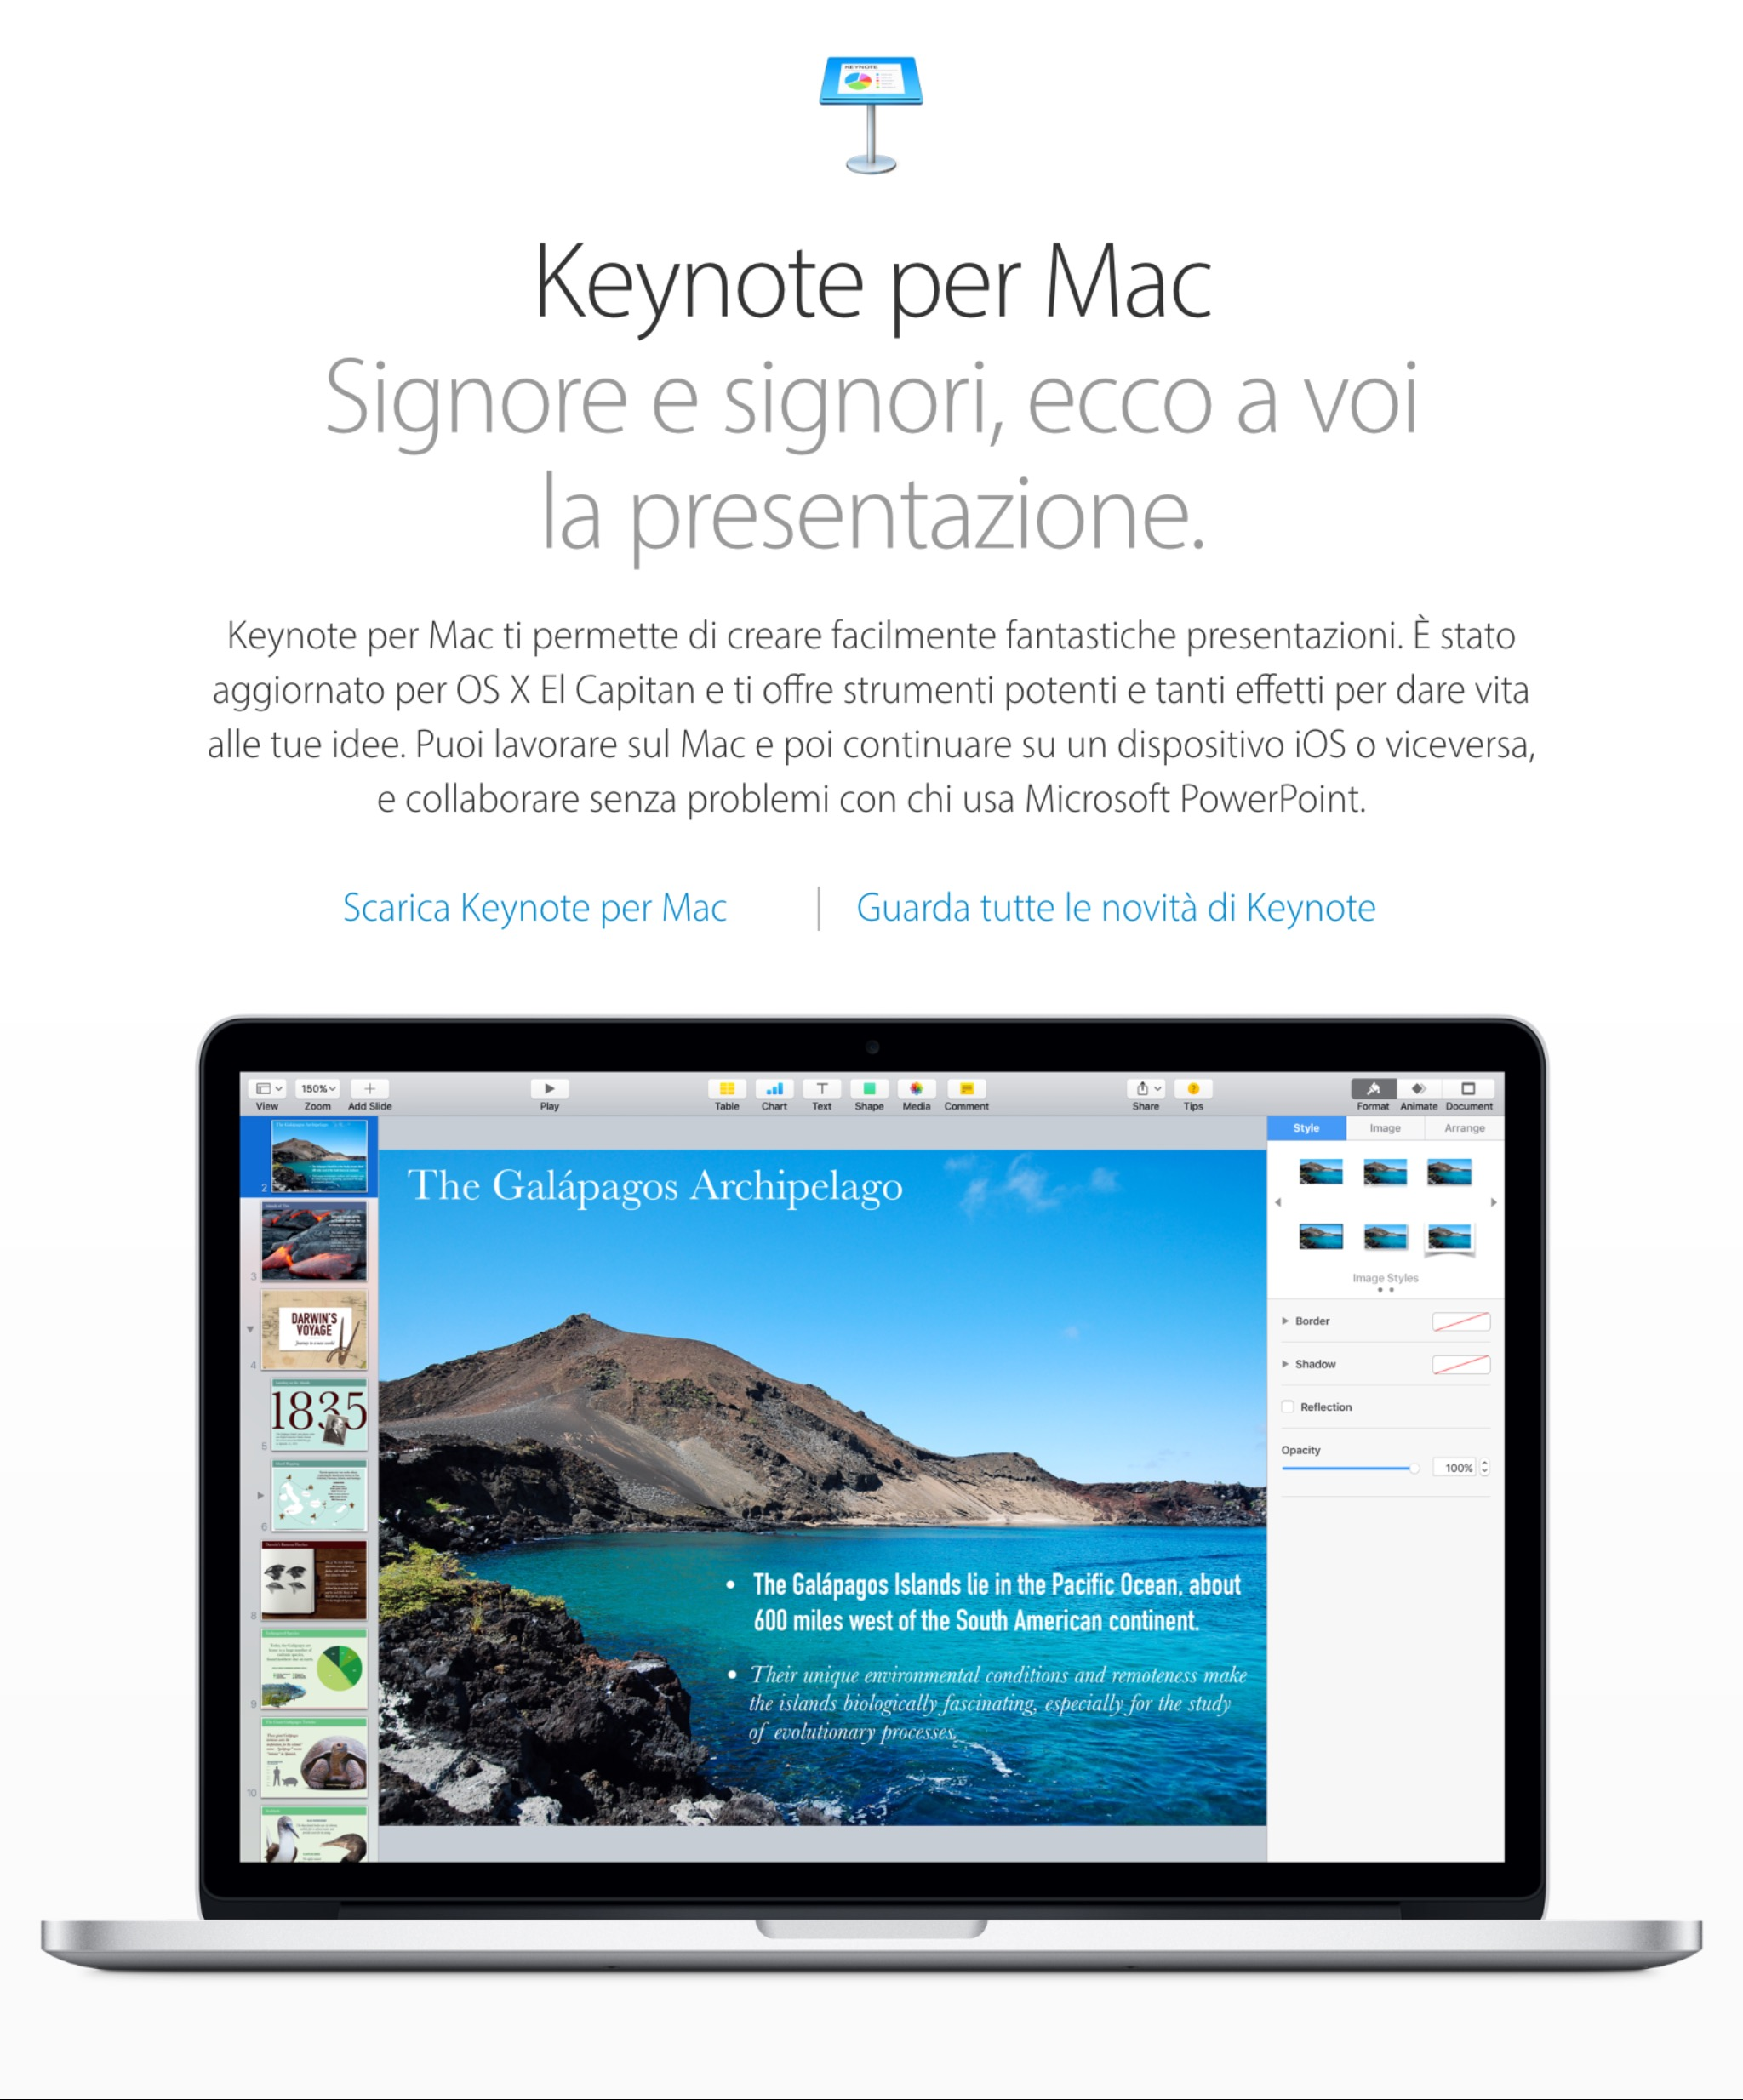 Screenshot della pagina introduttiva di Apple per Keynote